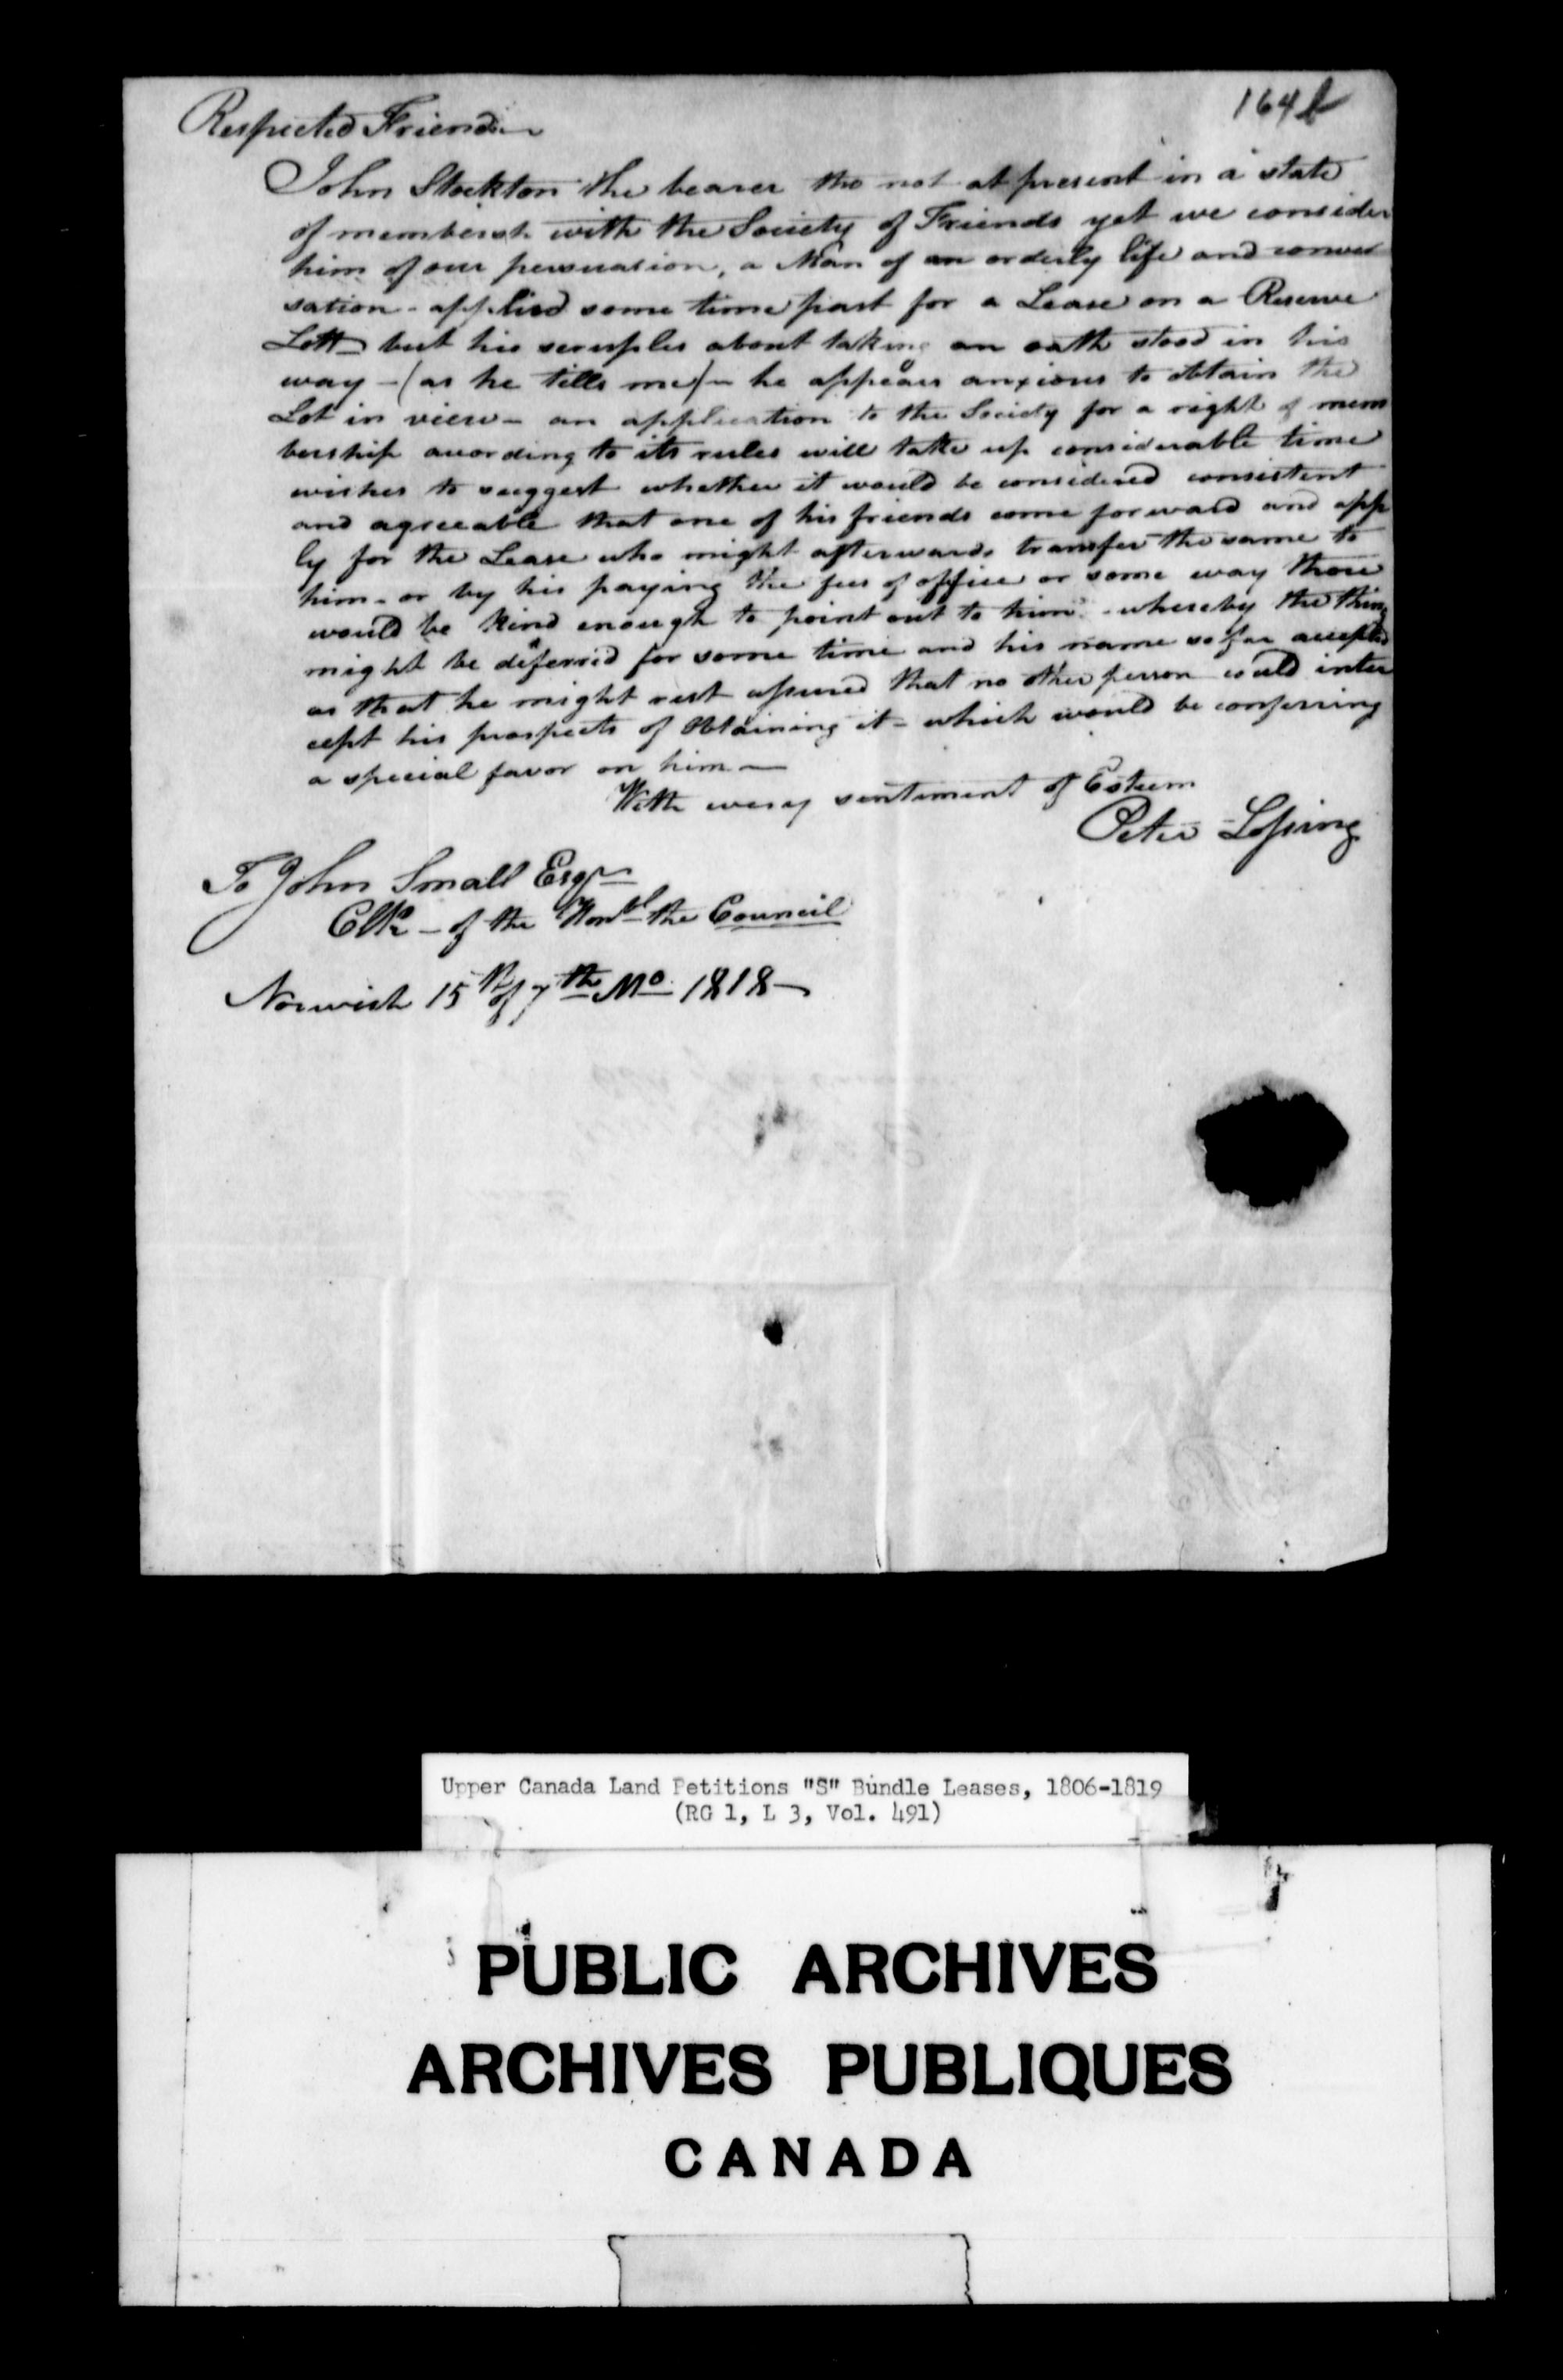 Title: Upper Canada Land Petitions (1763-1865) - Mikan Number: 205131 - Microform: c-2830